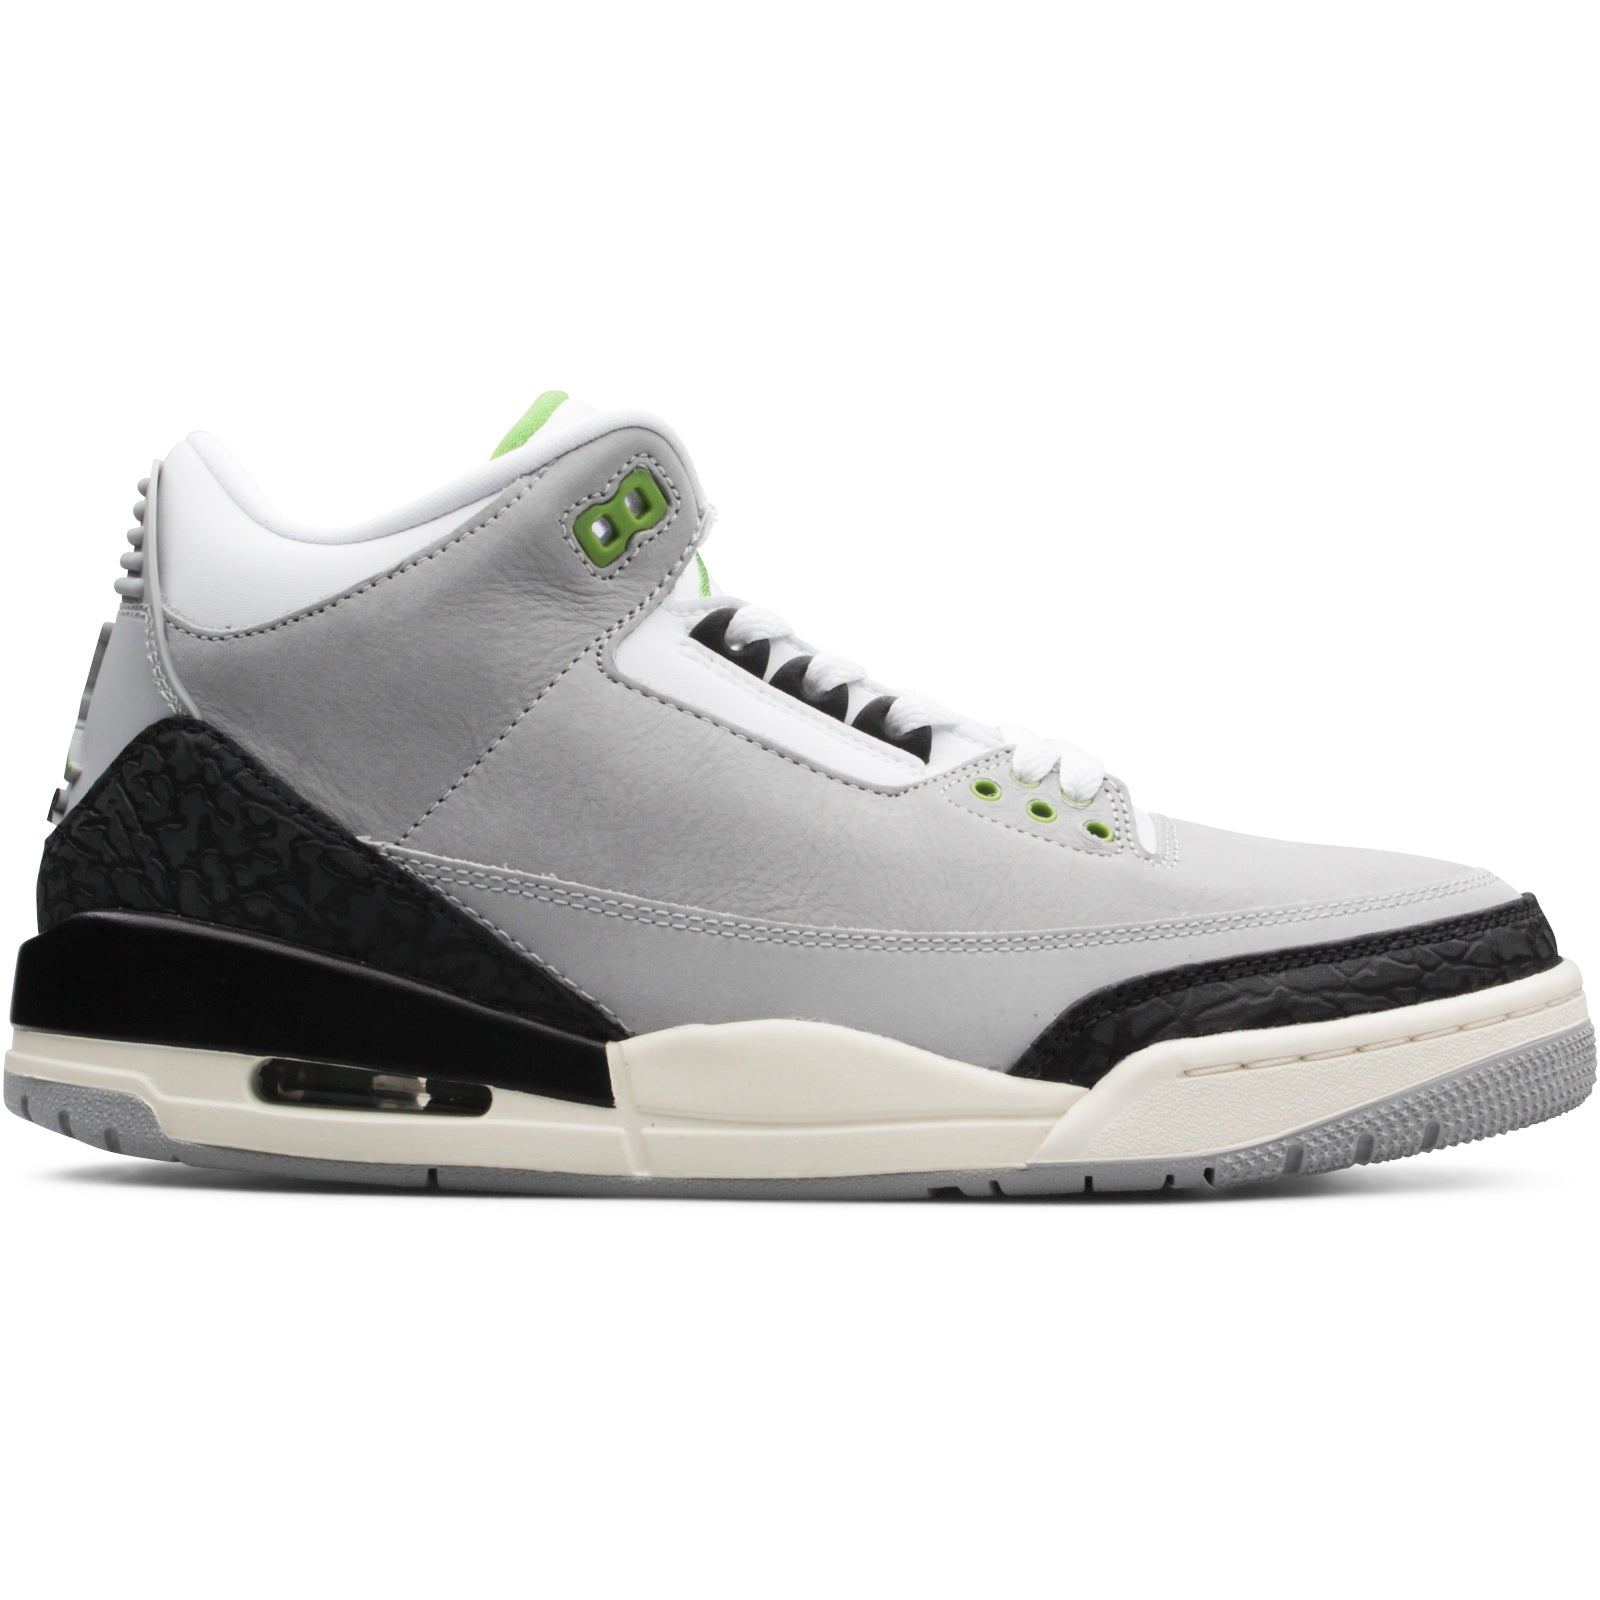 1170f6d2707737 Air Jordan 3 Retro LIGHT SMOKE GREY CHLOROPHYLL-BLACK-WHITE-SAIL 136064-006.  Retail   190